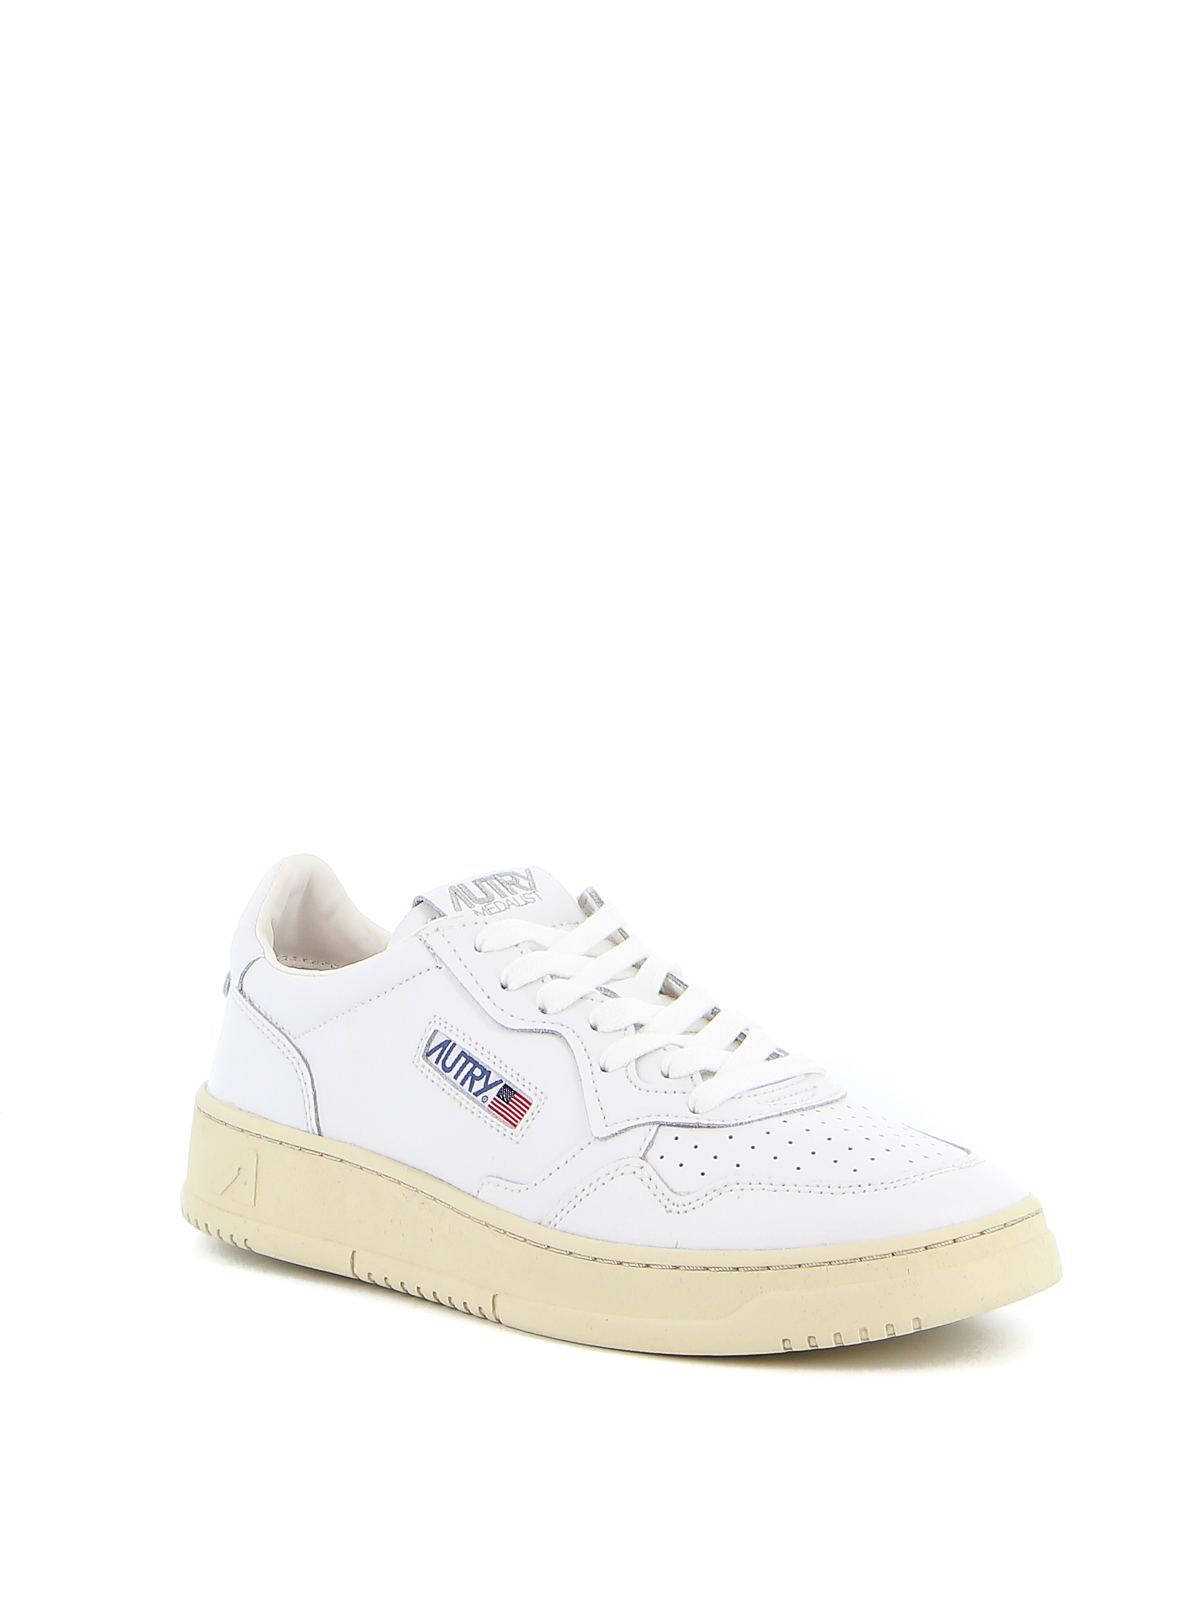 Immagine di Autry   Autry 01 Low Leather